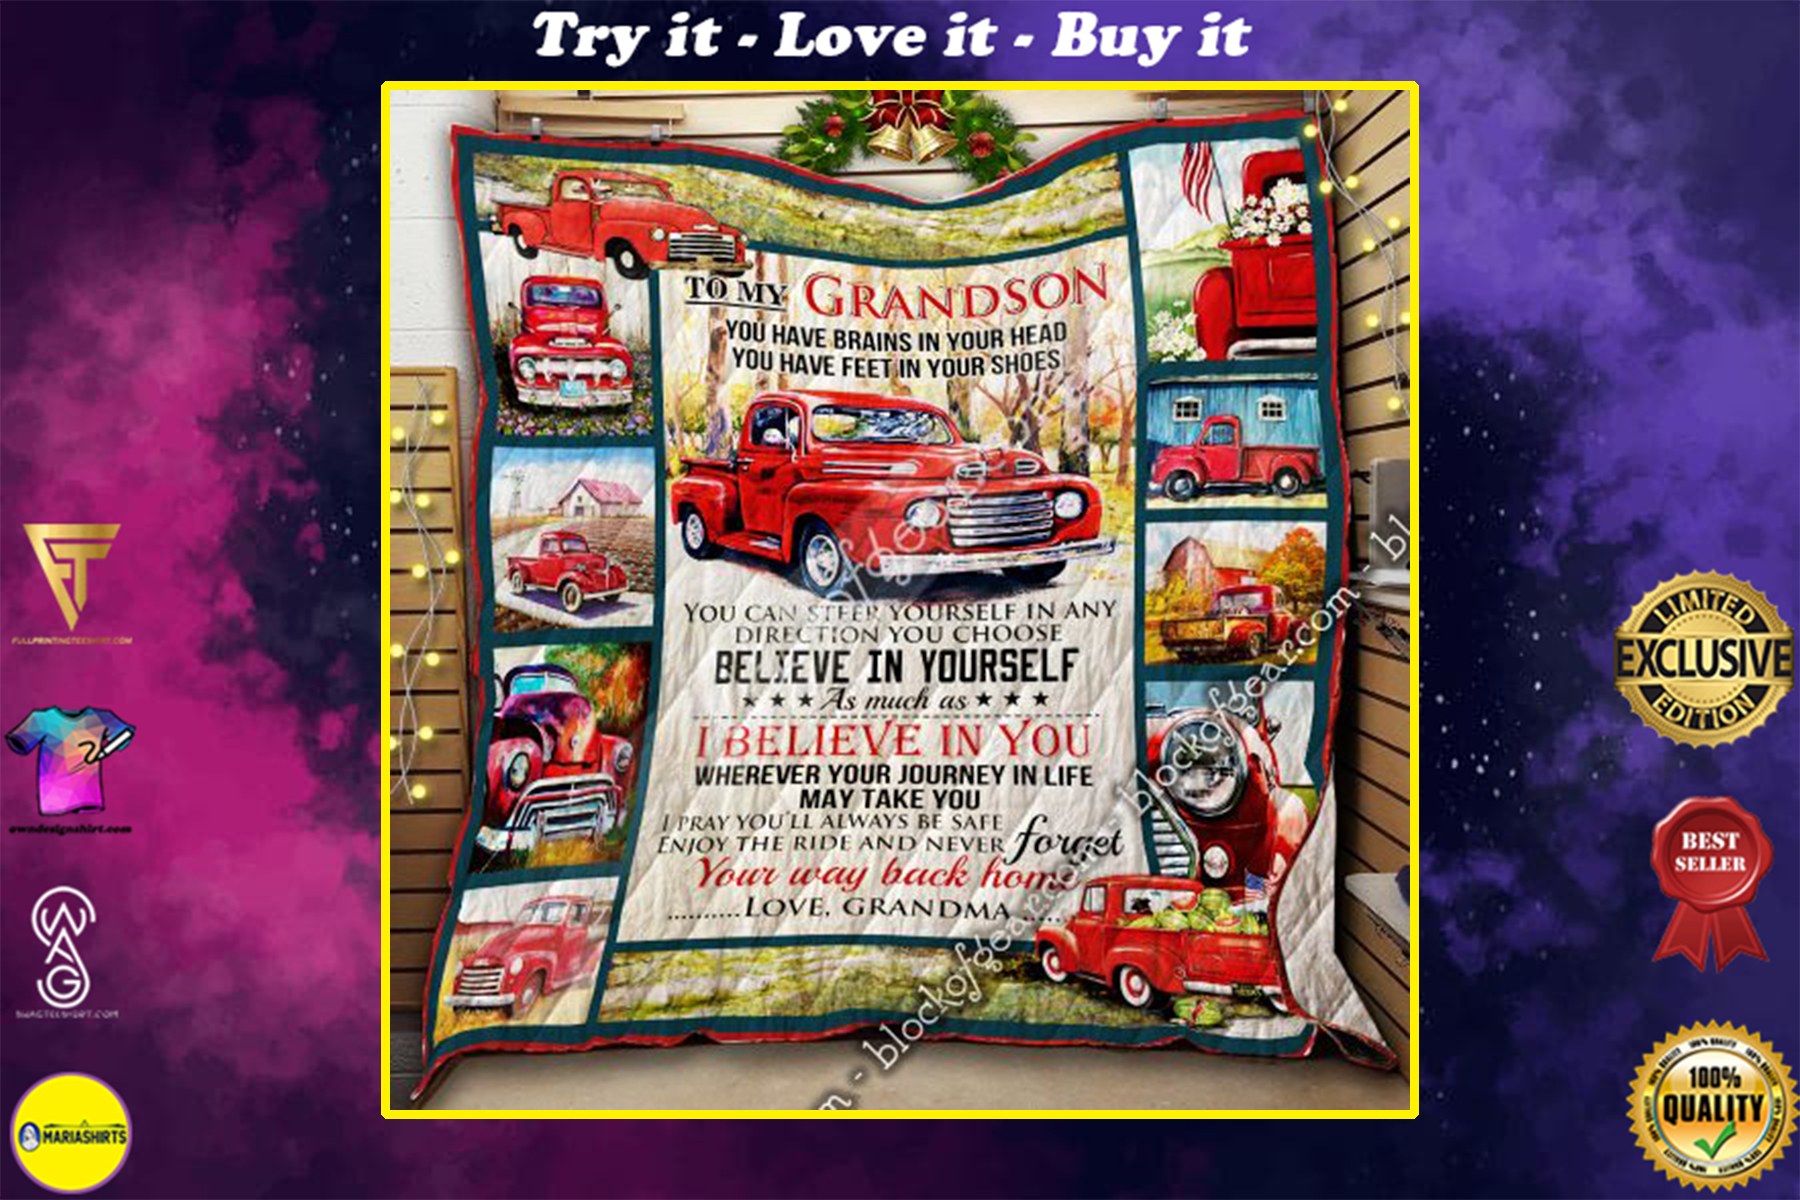 [special edition] red truck to my grandson i believe in you and never forget your way back home your grandma quilt - maria